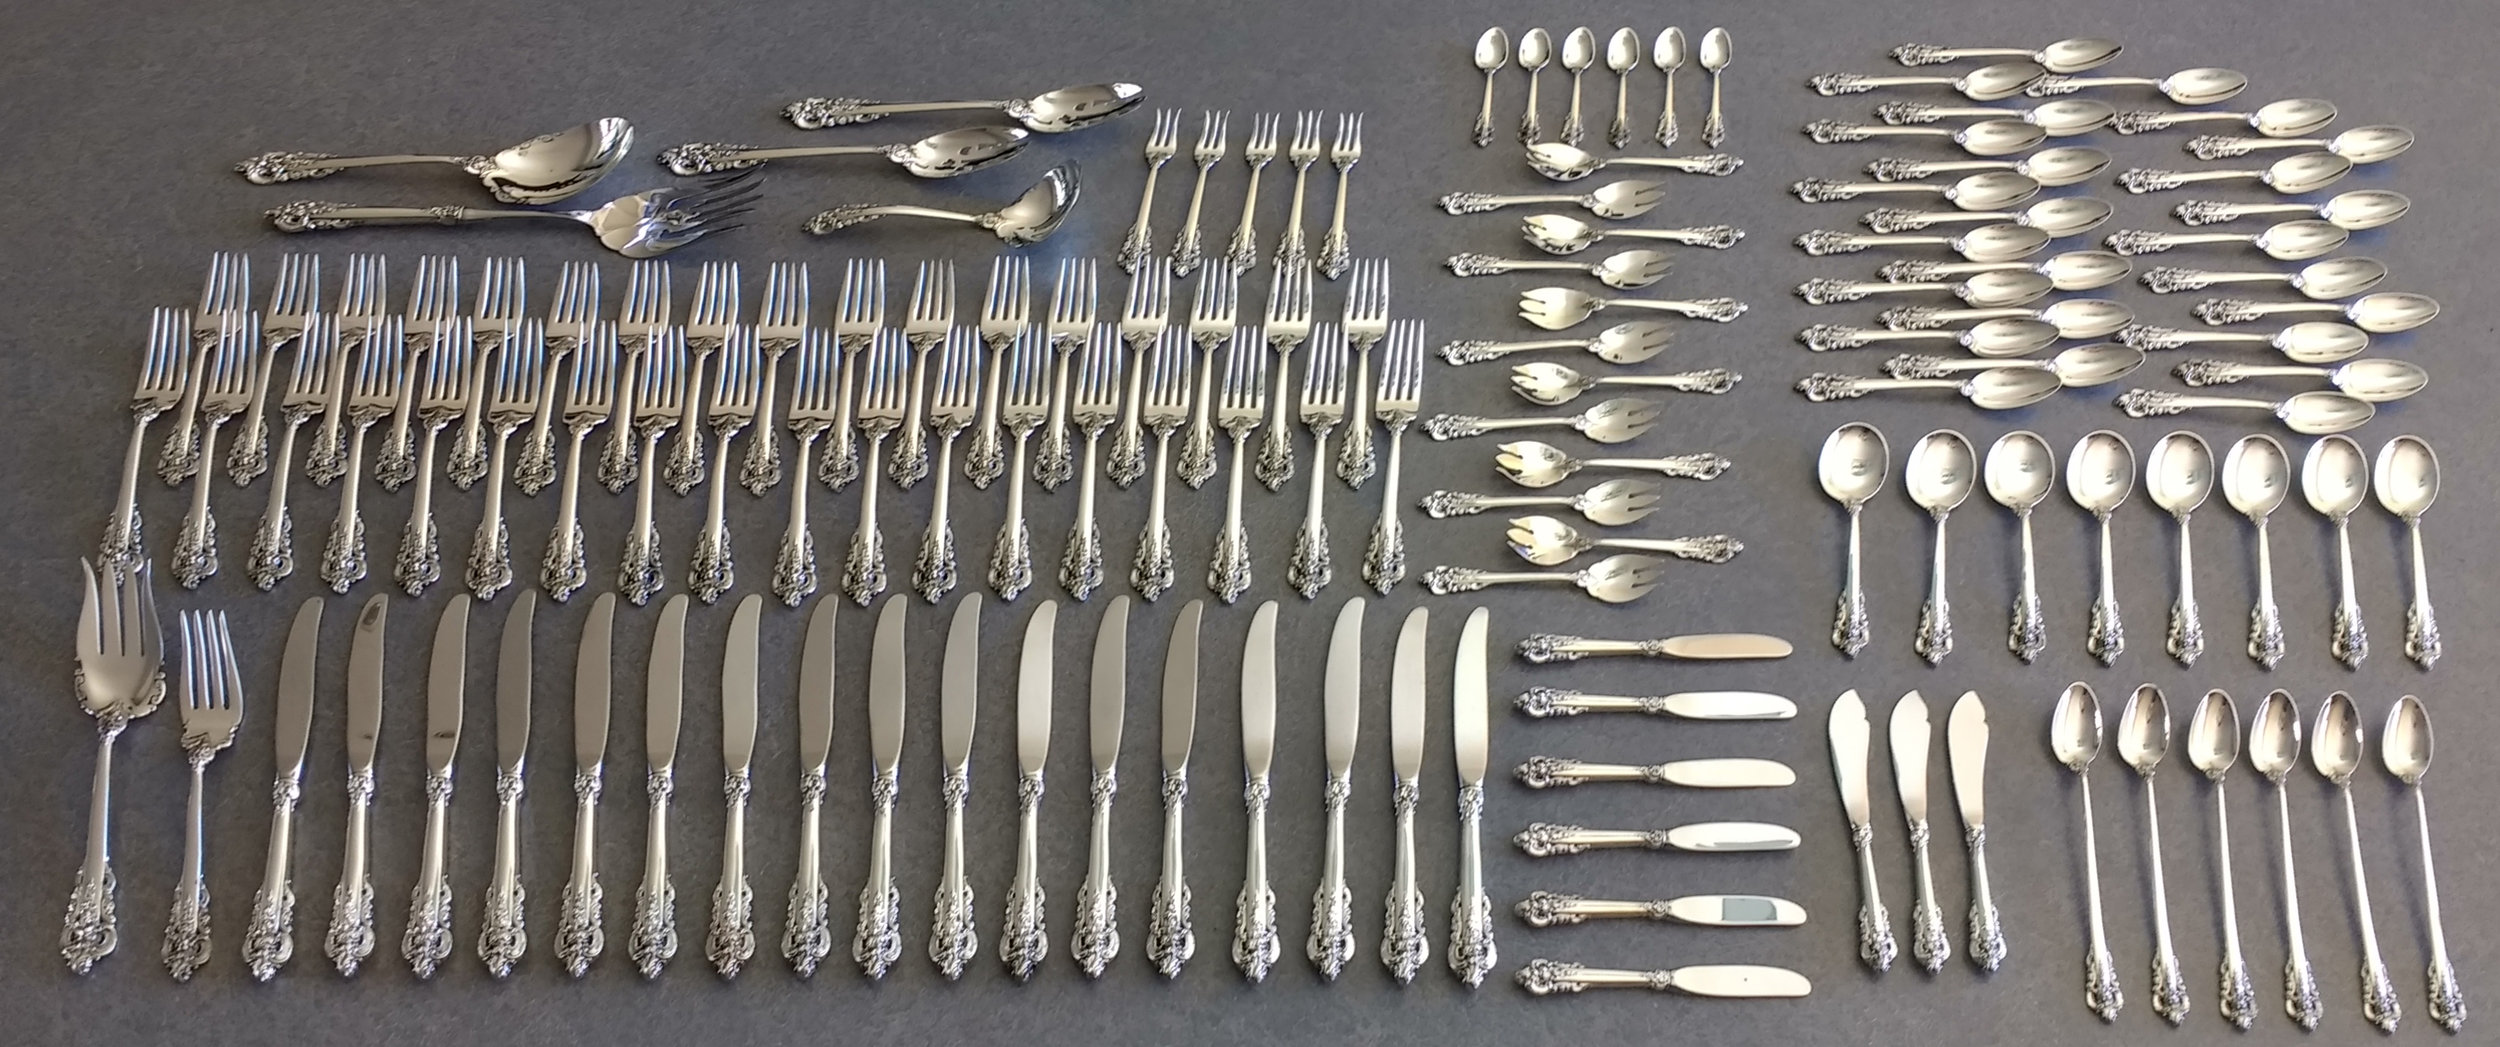 Sterling silver knives, forks, spoons, and serving pieces.